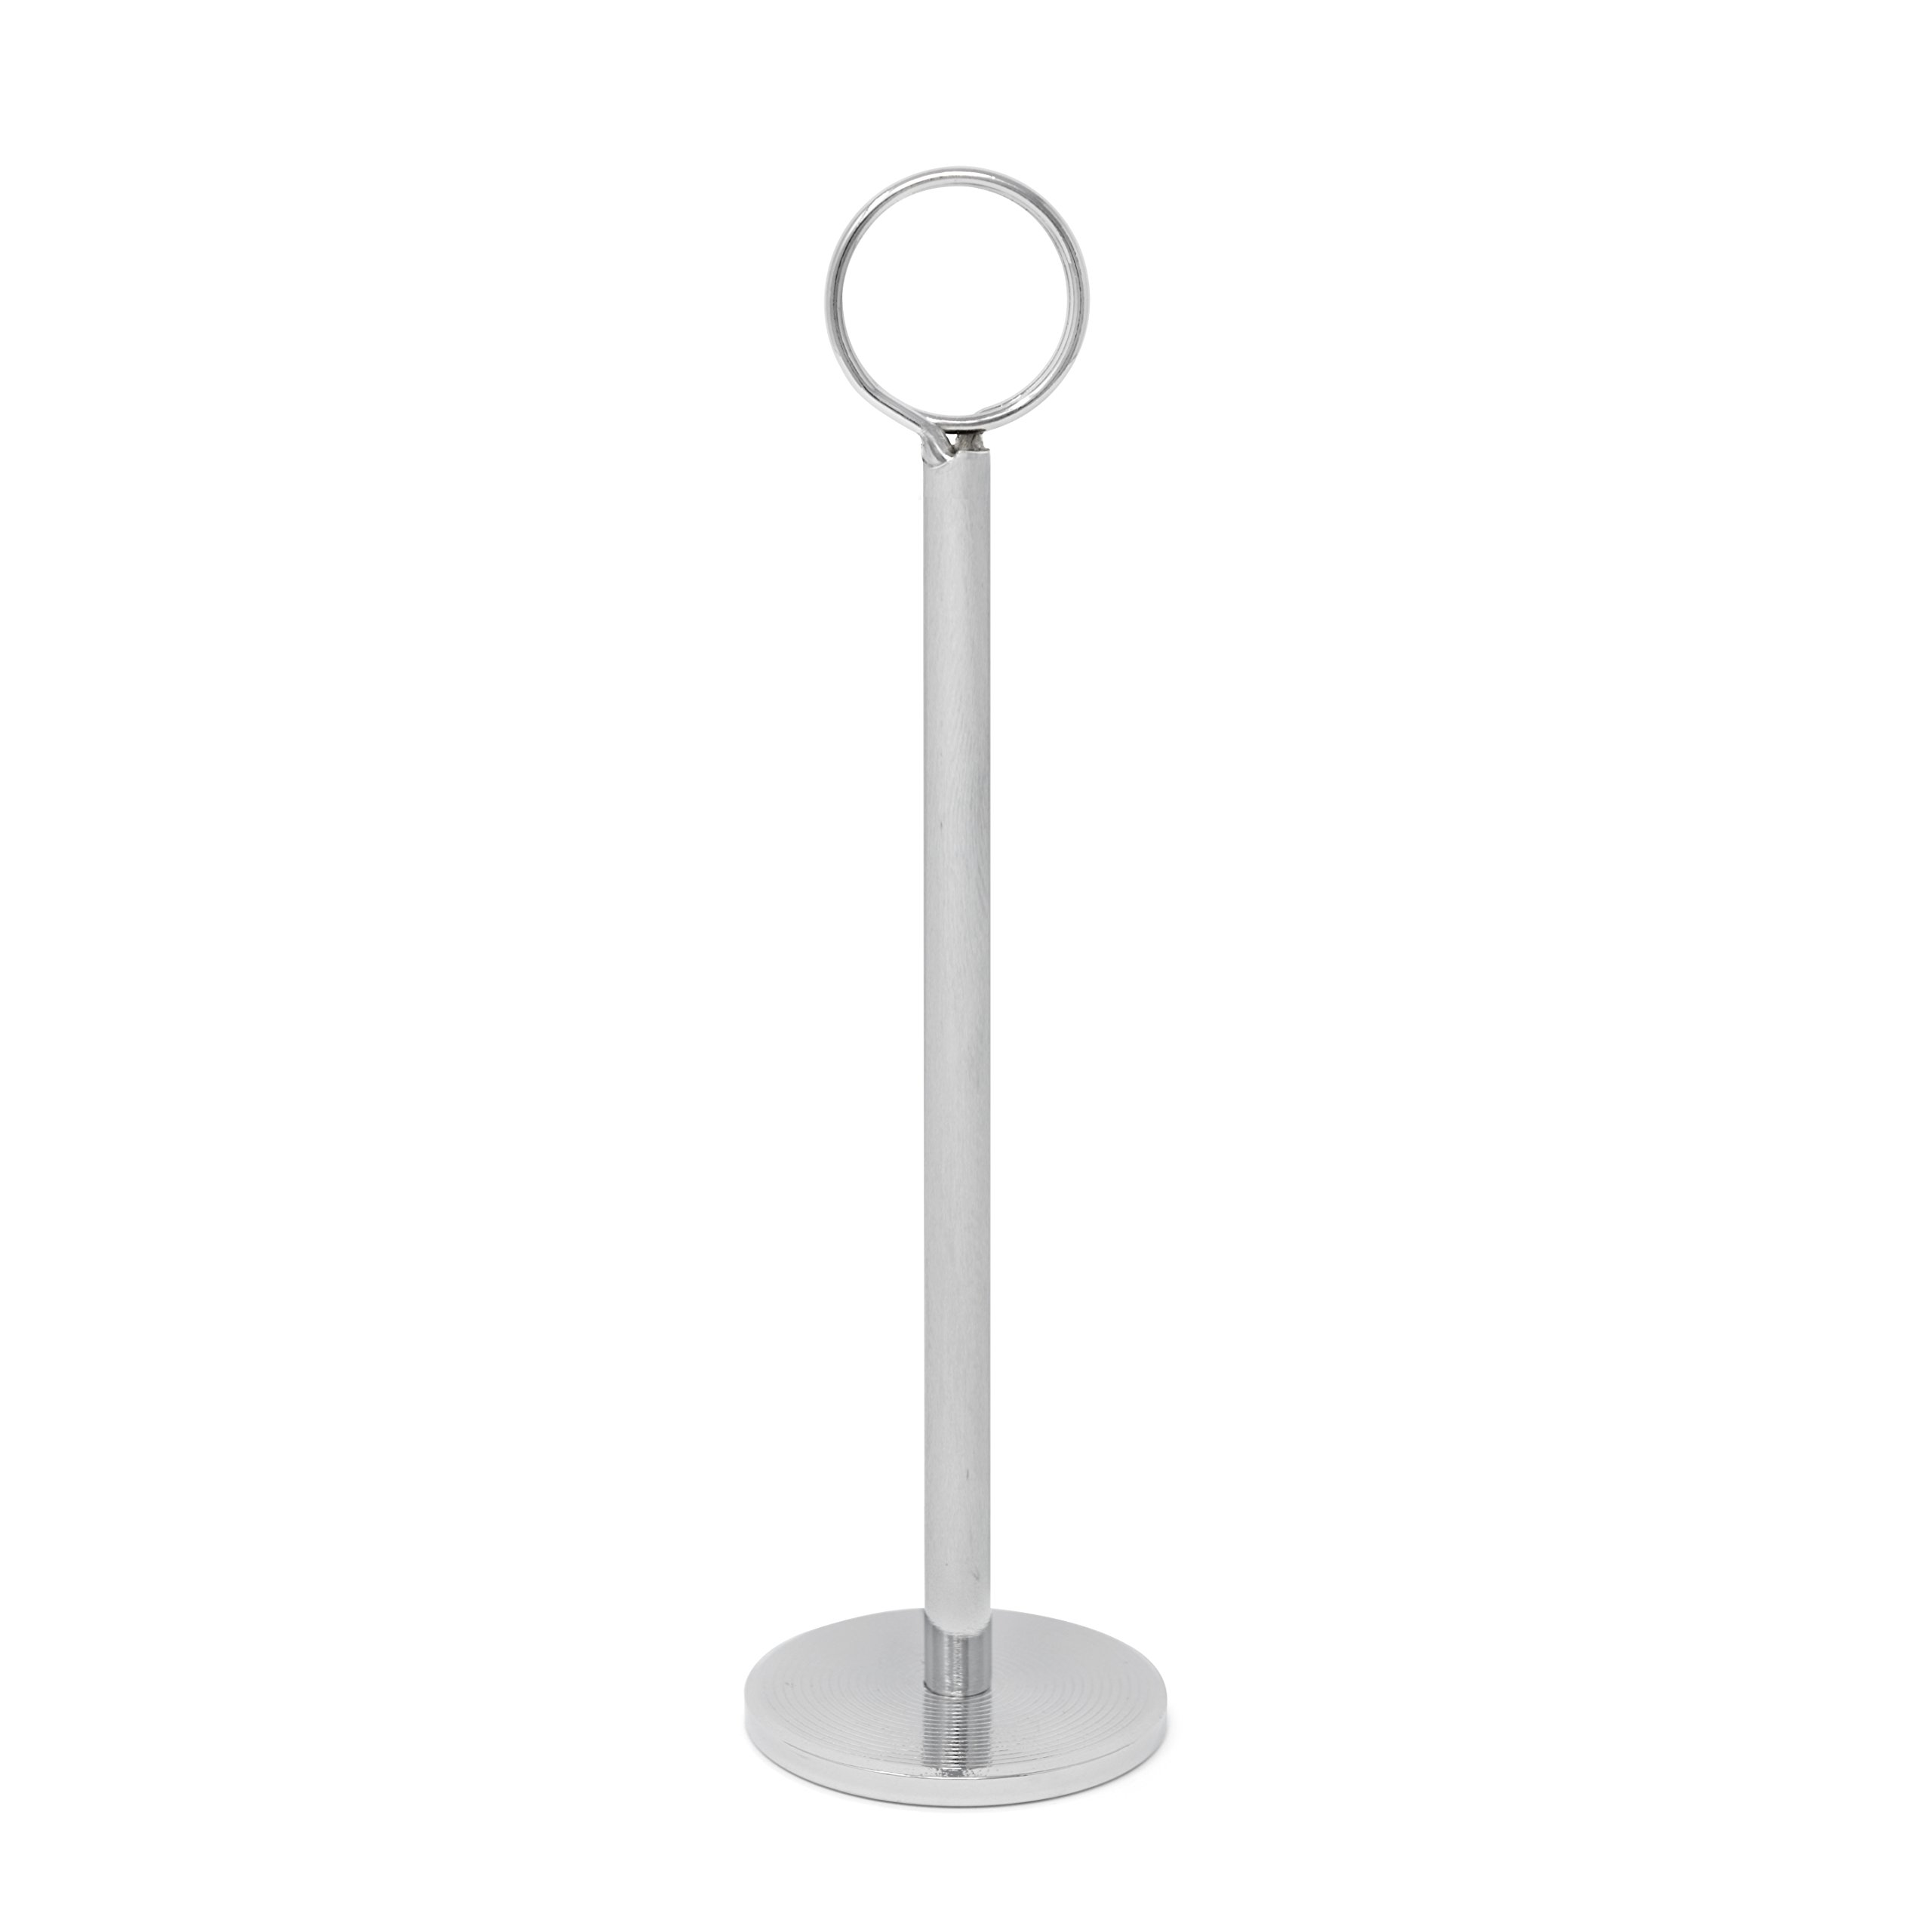 GrayBunny GB-6791C2 Place Card Holder, 8 in Tall, 12 pack, Chrome  Silver, Table Cardholder Tabletop Menu Holder Harp-Clip Number Holder Recipe Holder Reserved Card Holder, For Restaurants, Weddings by Gray Bunny